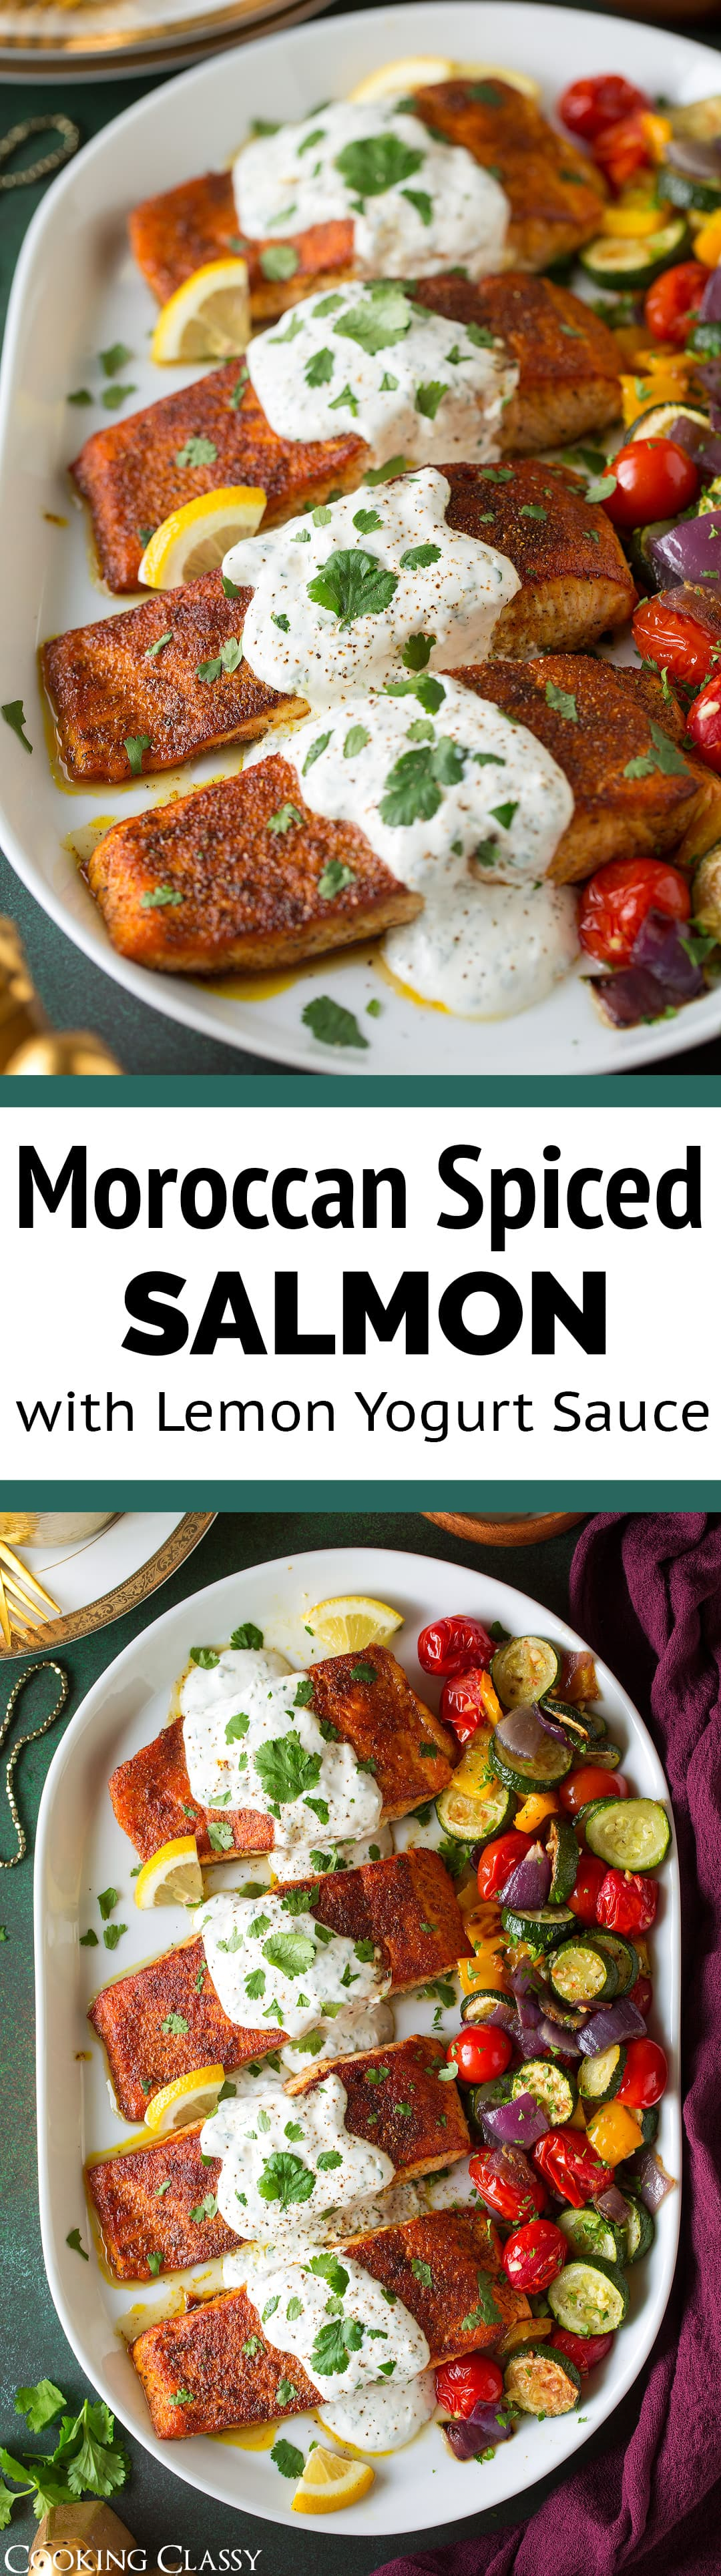 Moroccan Spiced Salmon with Creamy Lemon Yogurt Sauce - skinless salmon fillets are generously coated with a fragrant Moroccan spice blend then pan seared to perfection, then they are covered with a bright and creamy lemon and cilantro sauce. Serve with roasted veggies and couscous for a perfect meal! #moroccan #salmon #yogurtsauce #healthyrecipe #easydinner